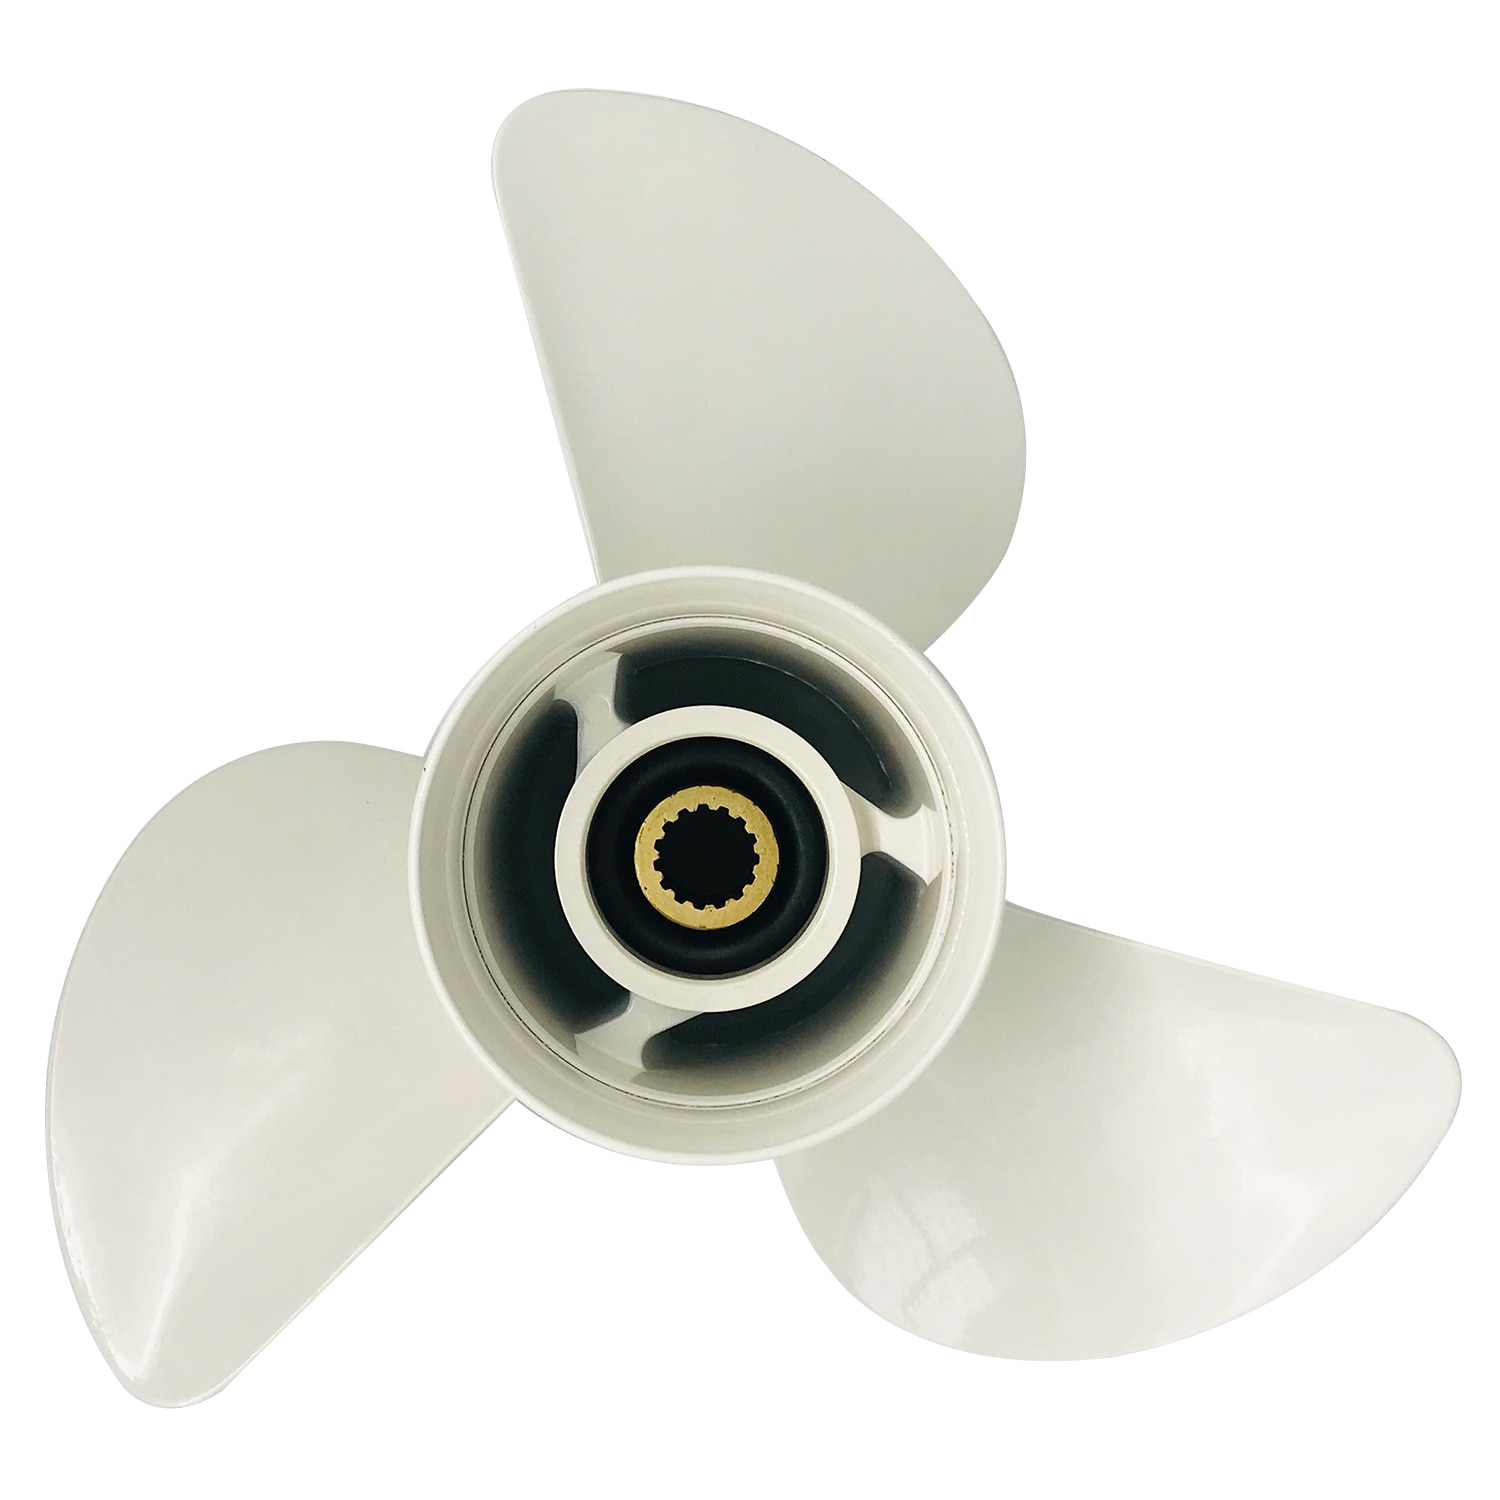 Boat propeller suit for Yamaha 13 7/8x17 aluminum prop 50-130HP 3 blade 15 tooth RH enlarge